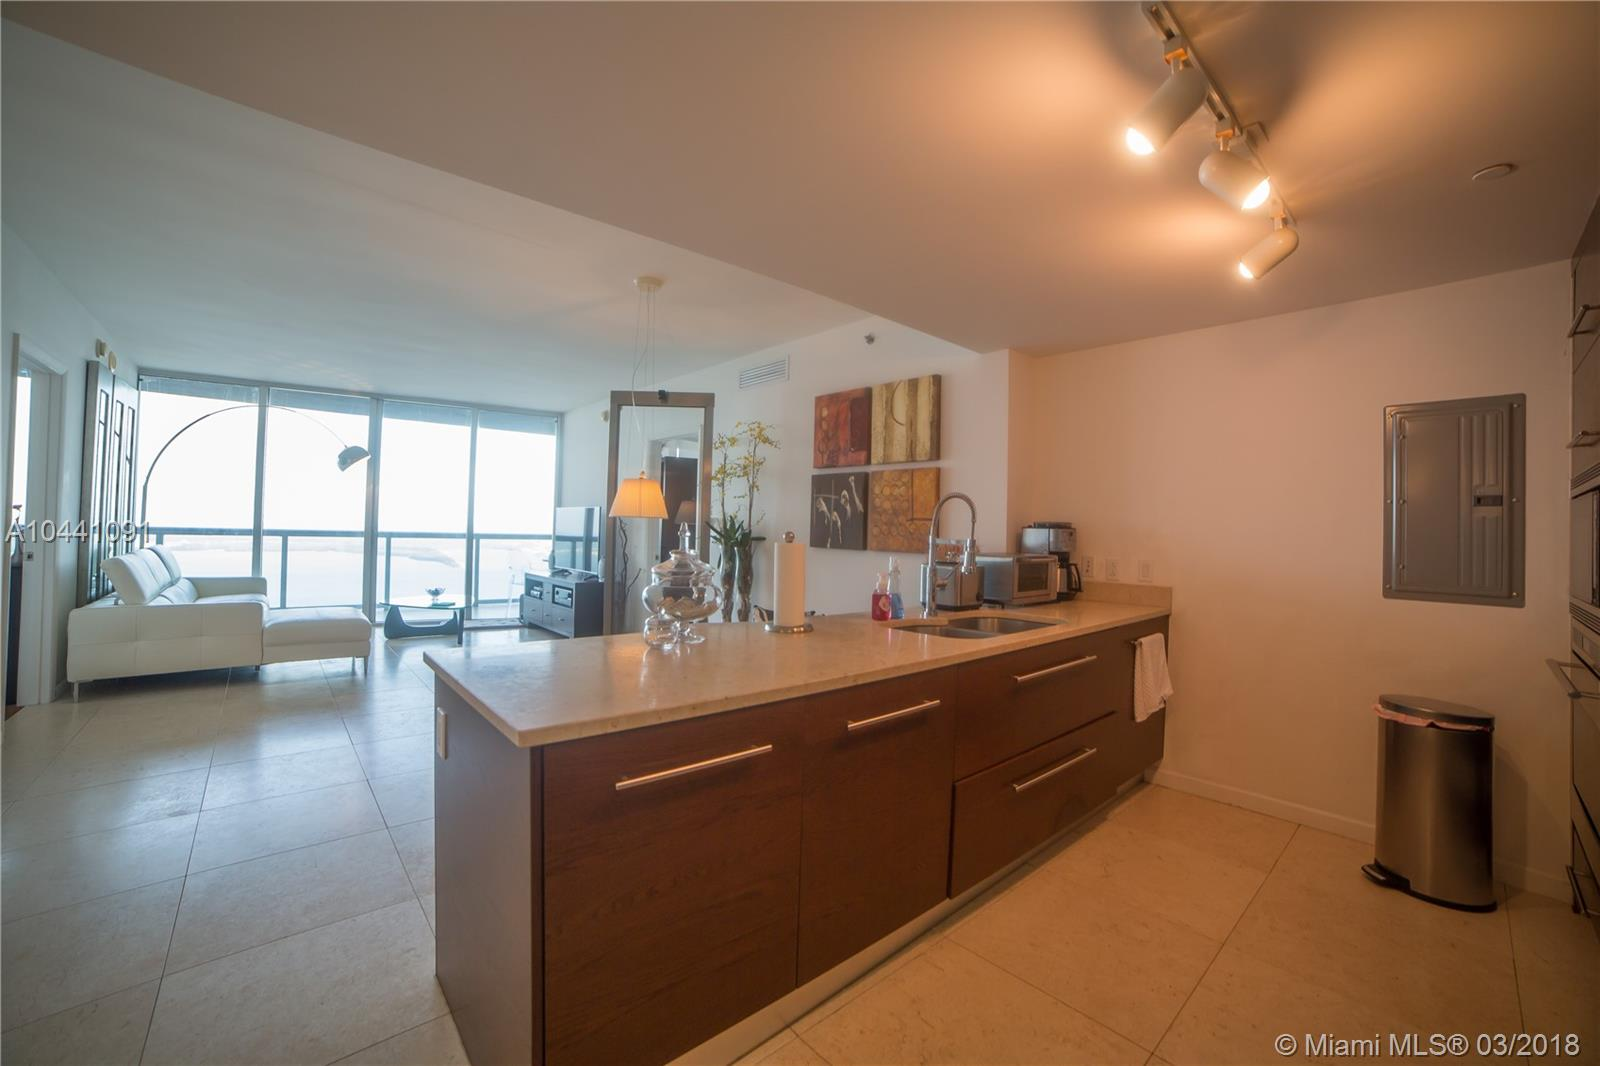 465 Brickell Ave #5603, Miami FL, 33131